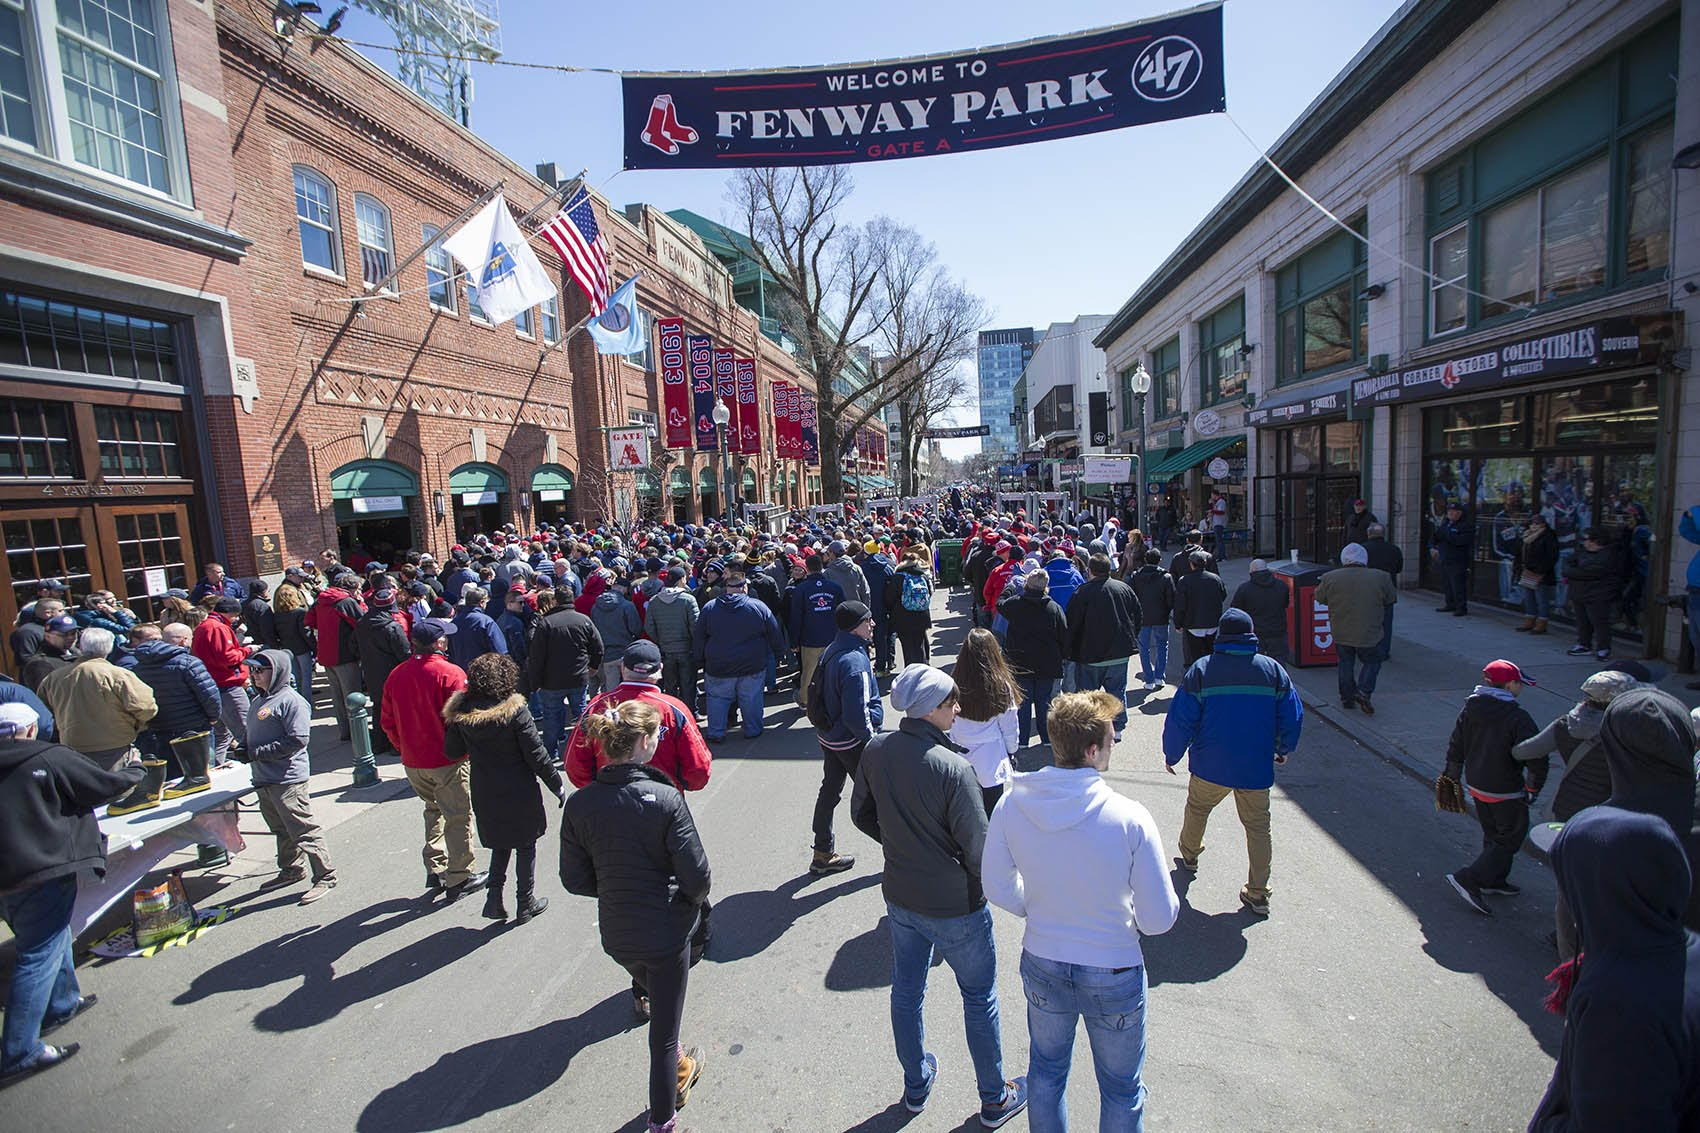 Red Sox fans line up outside the turnstiles on Yawkey Way on Opening Day at Fenway Park. (Jesse Costa/WBUR)